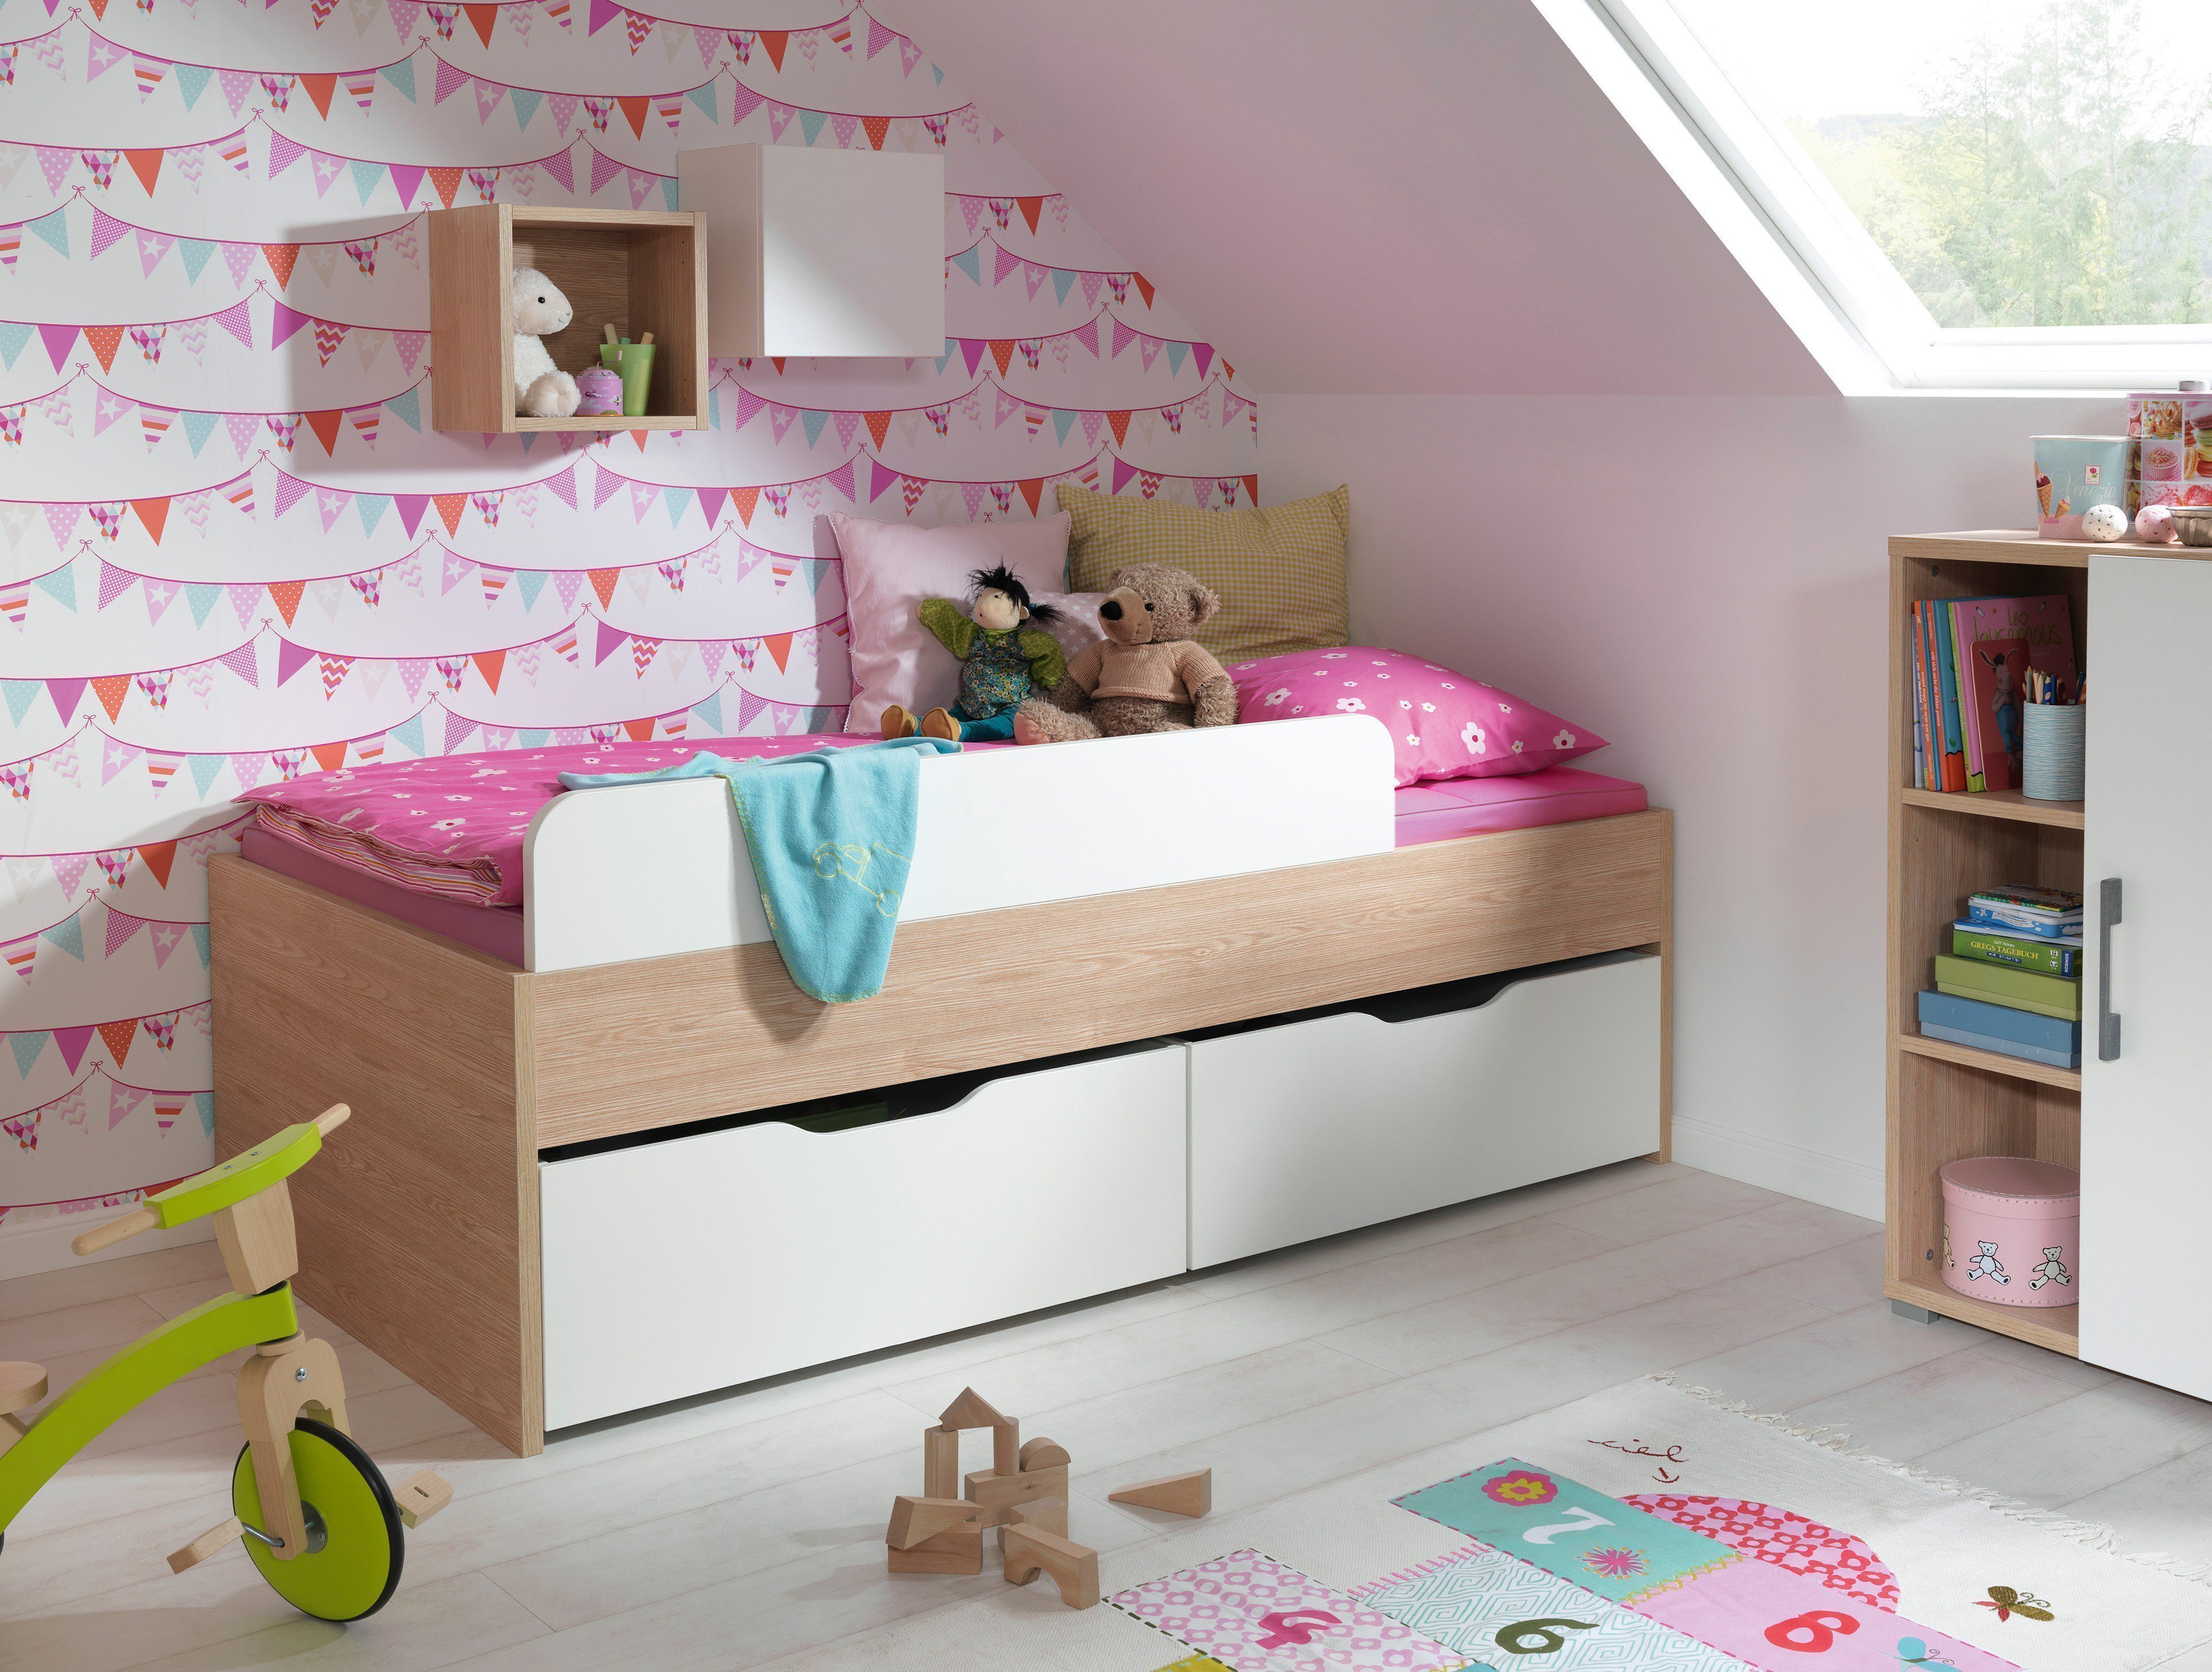 Welle Lumio Bett Welle Kinderbett Beautiful Wellembel Lasse Bett Frisch Tolle